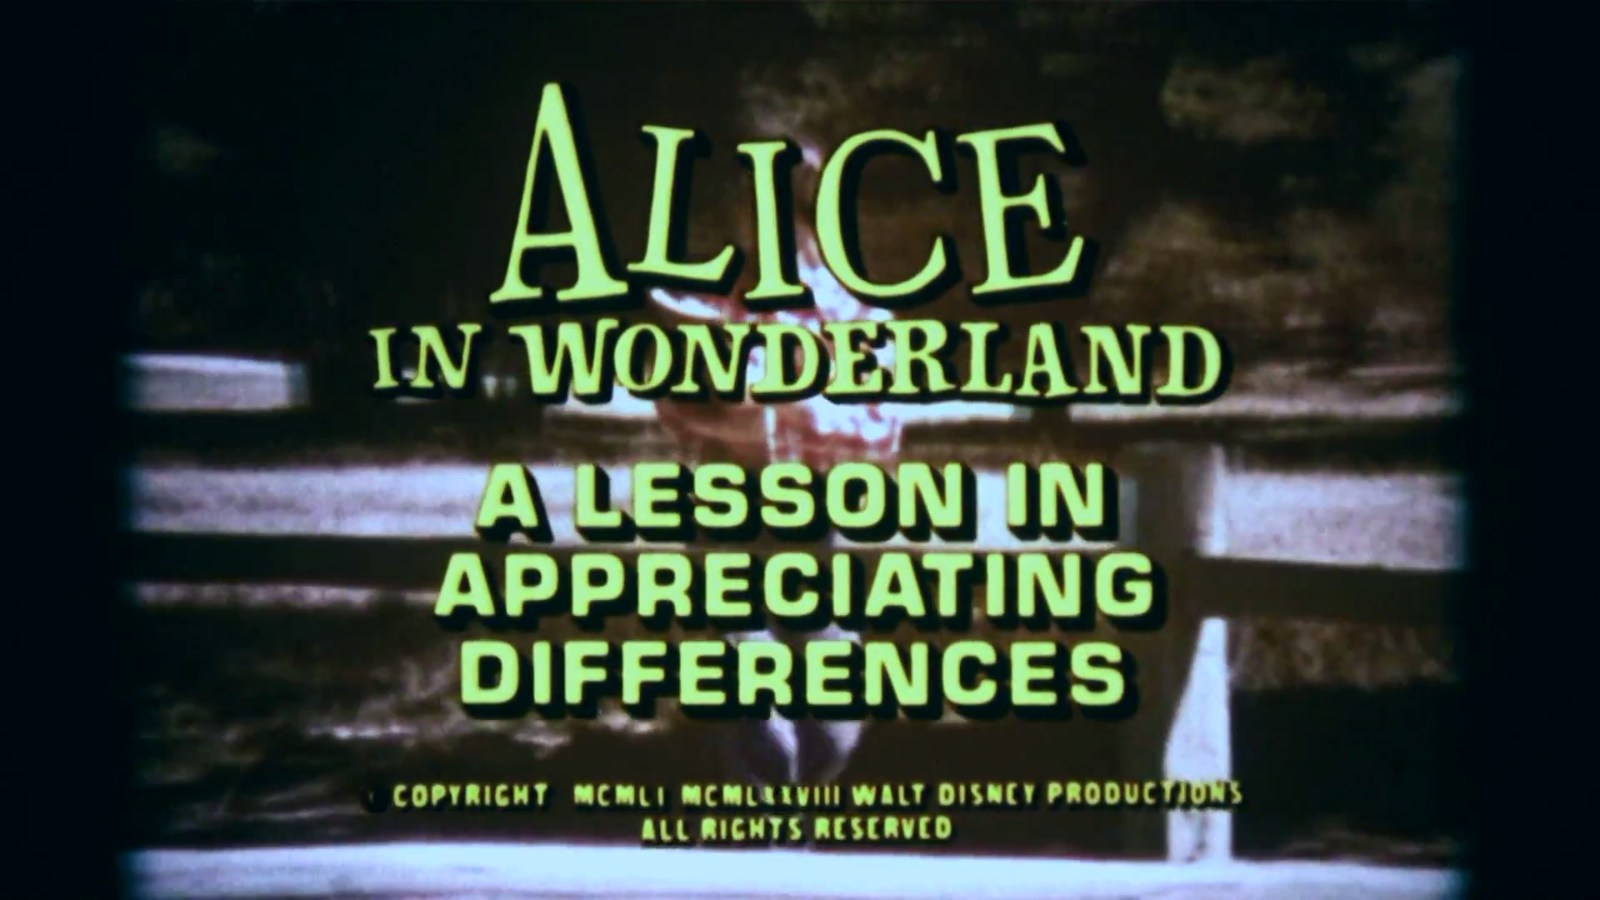 Alice in Wonderland: A Lesson in Appreciating Differences